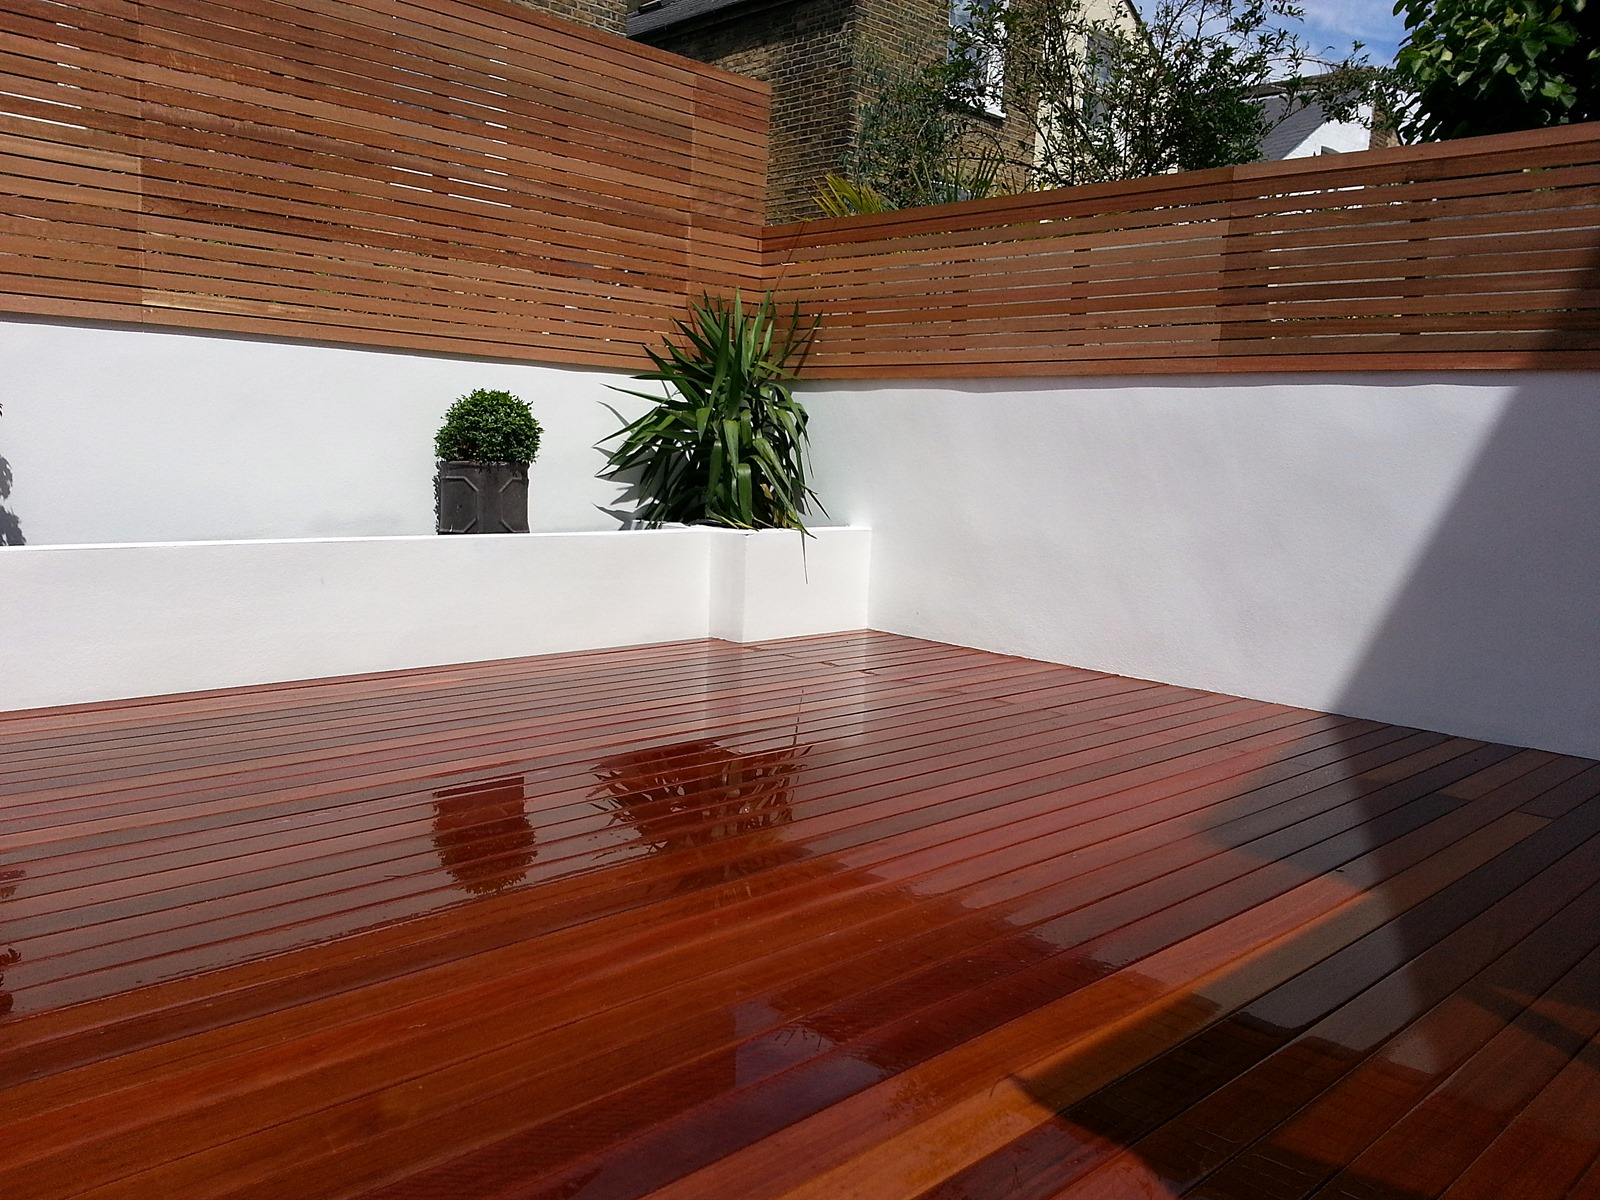 Walls archives london garden blog for Hardwood timber decking